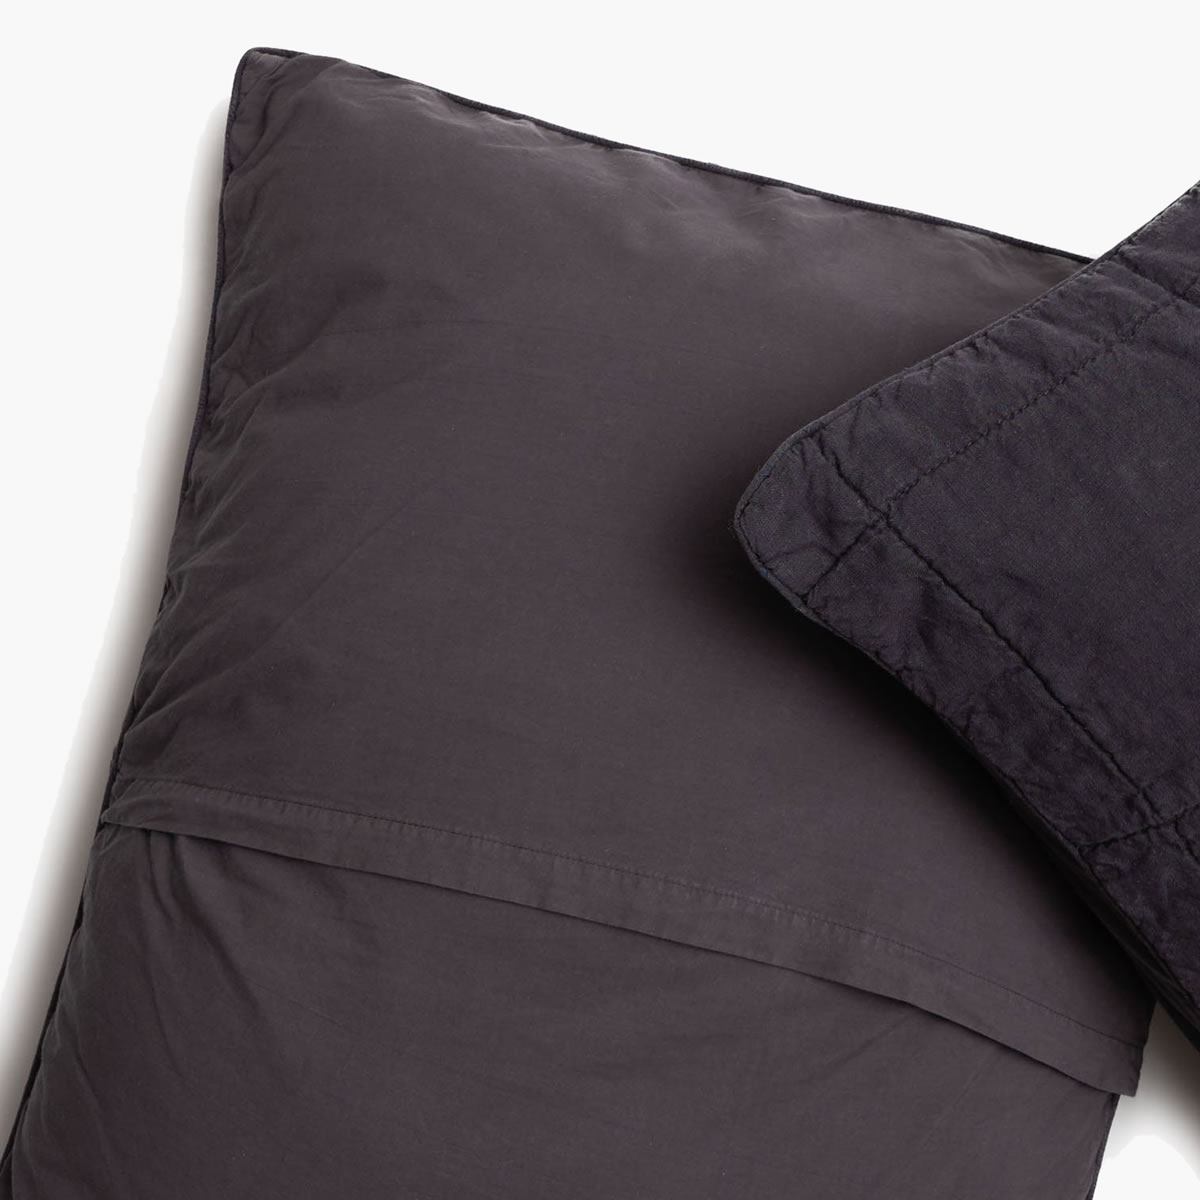 With an envelope closure on all Parachute pillows cases and shams, you get a Clean Look. -